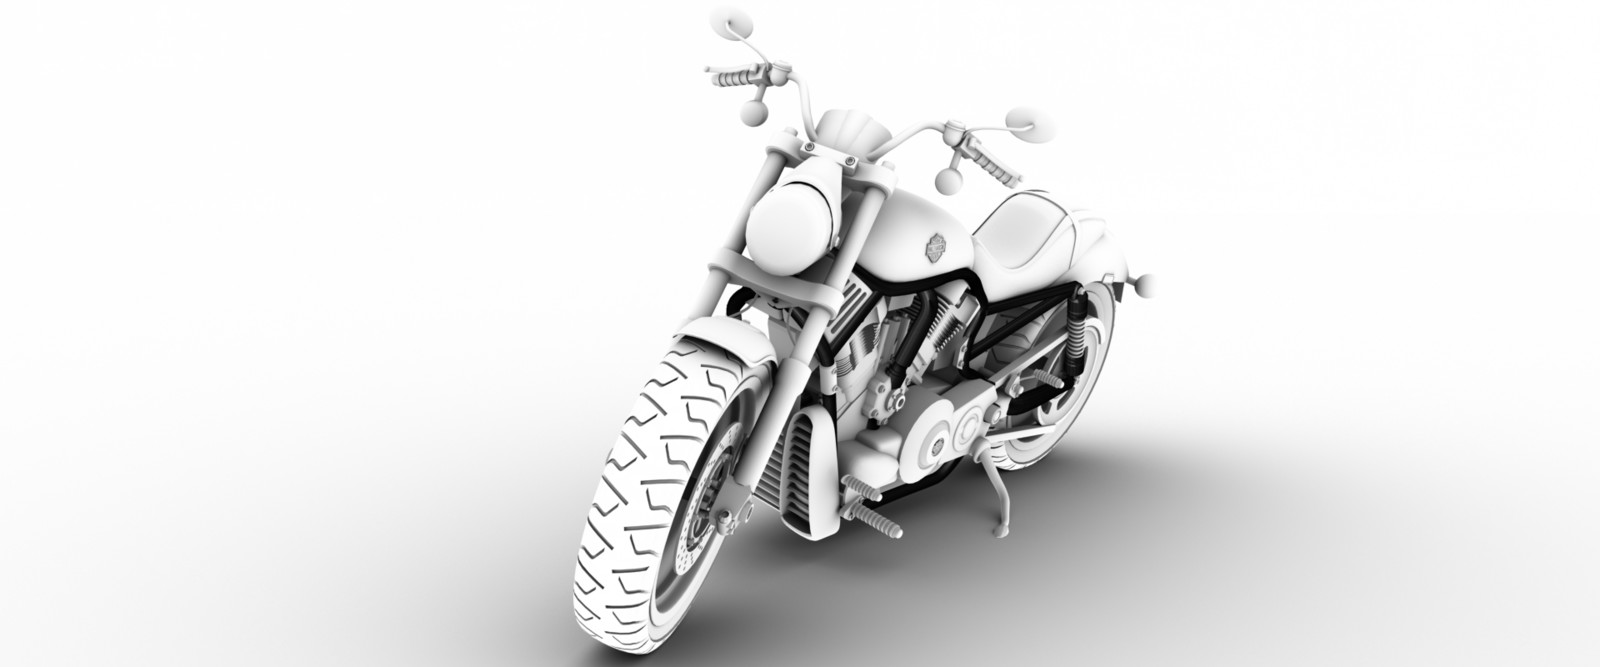 Ambient_occlusion